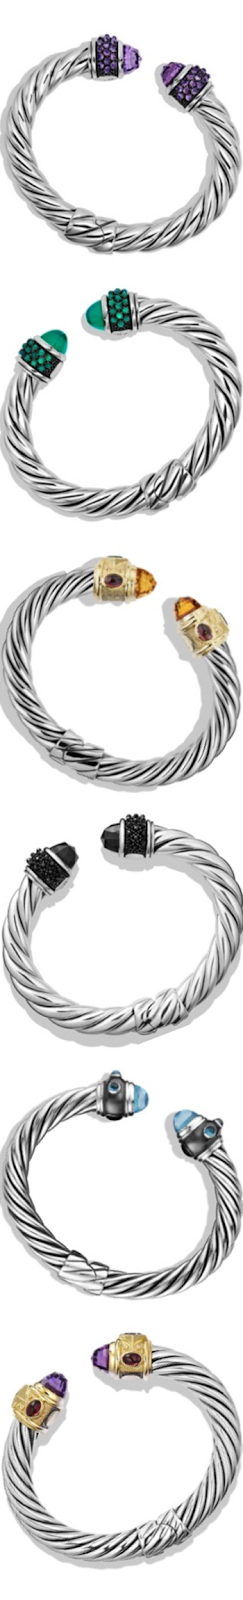 David Yurman Renaissance Assorted Bracelets